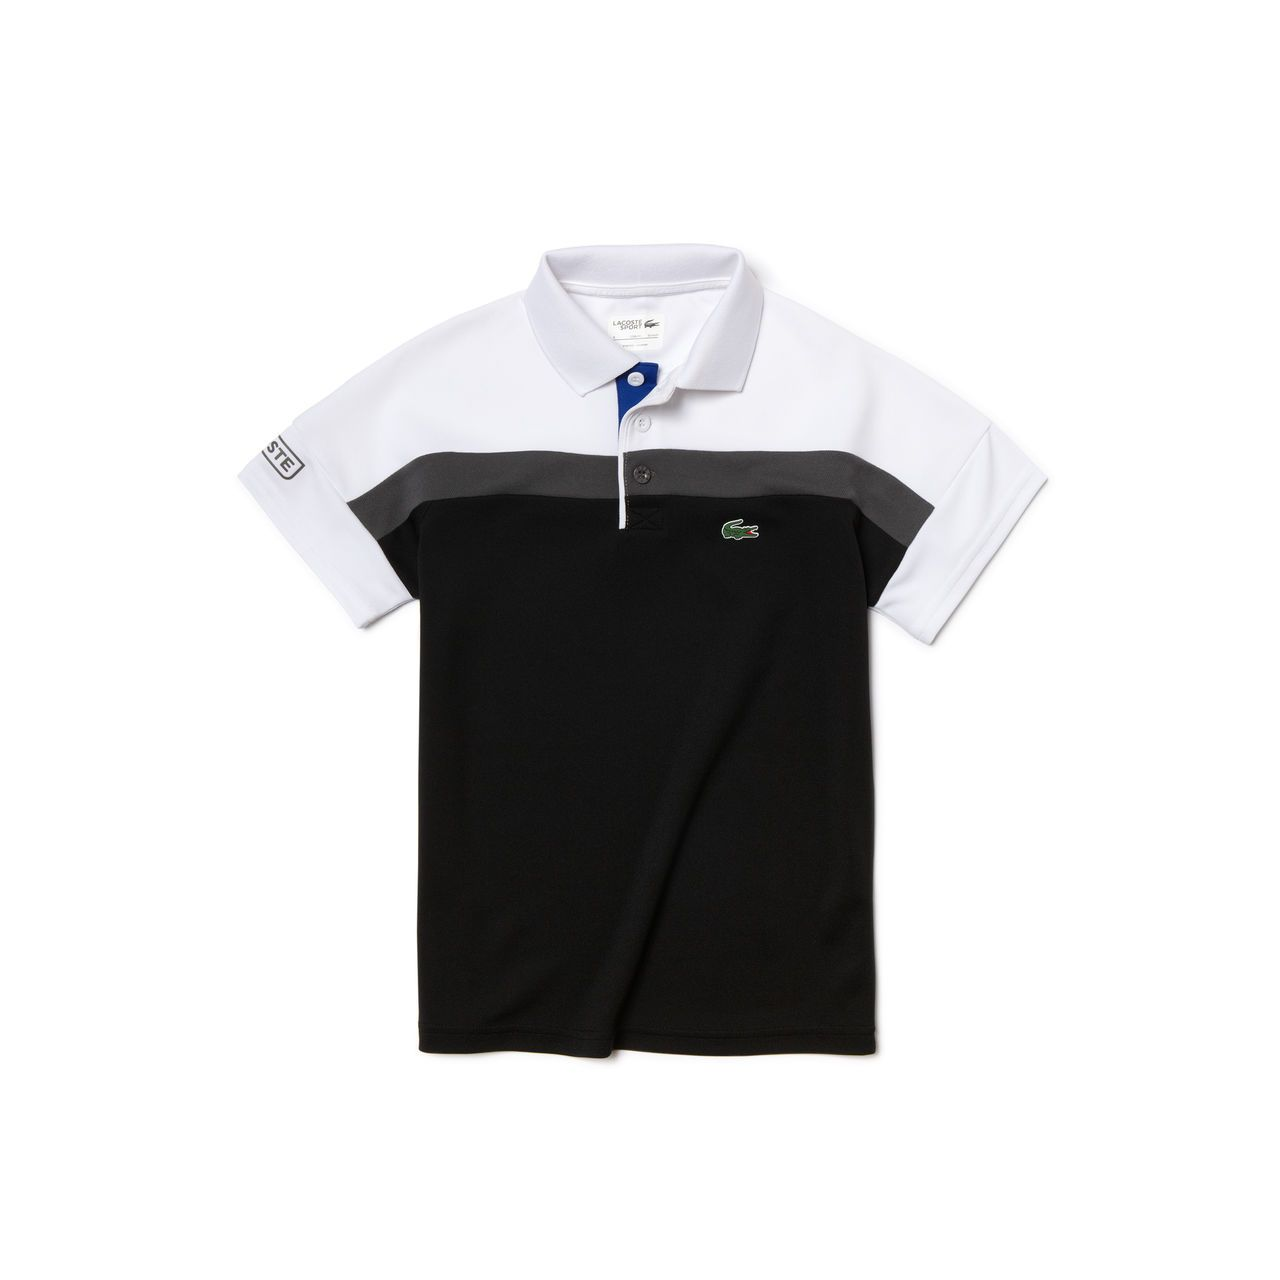 Designed for budding tennis players, this Lacoste Sport polo in run-resistant ultra-dry piqué features an iconic color block design. In this comfortable piece with seamless shoulders, your little champion is free to play, play, play.